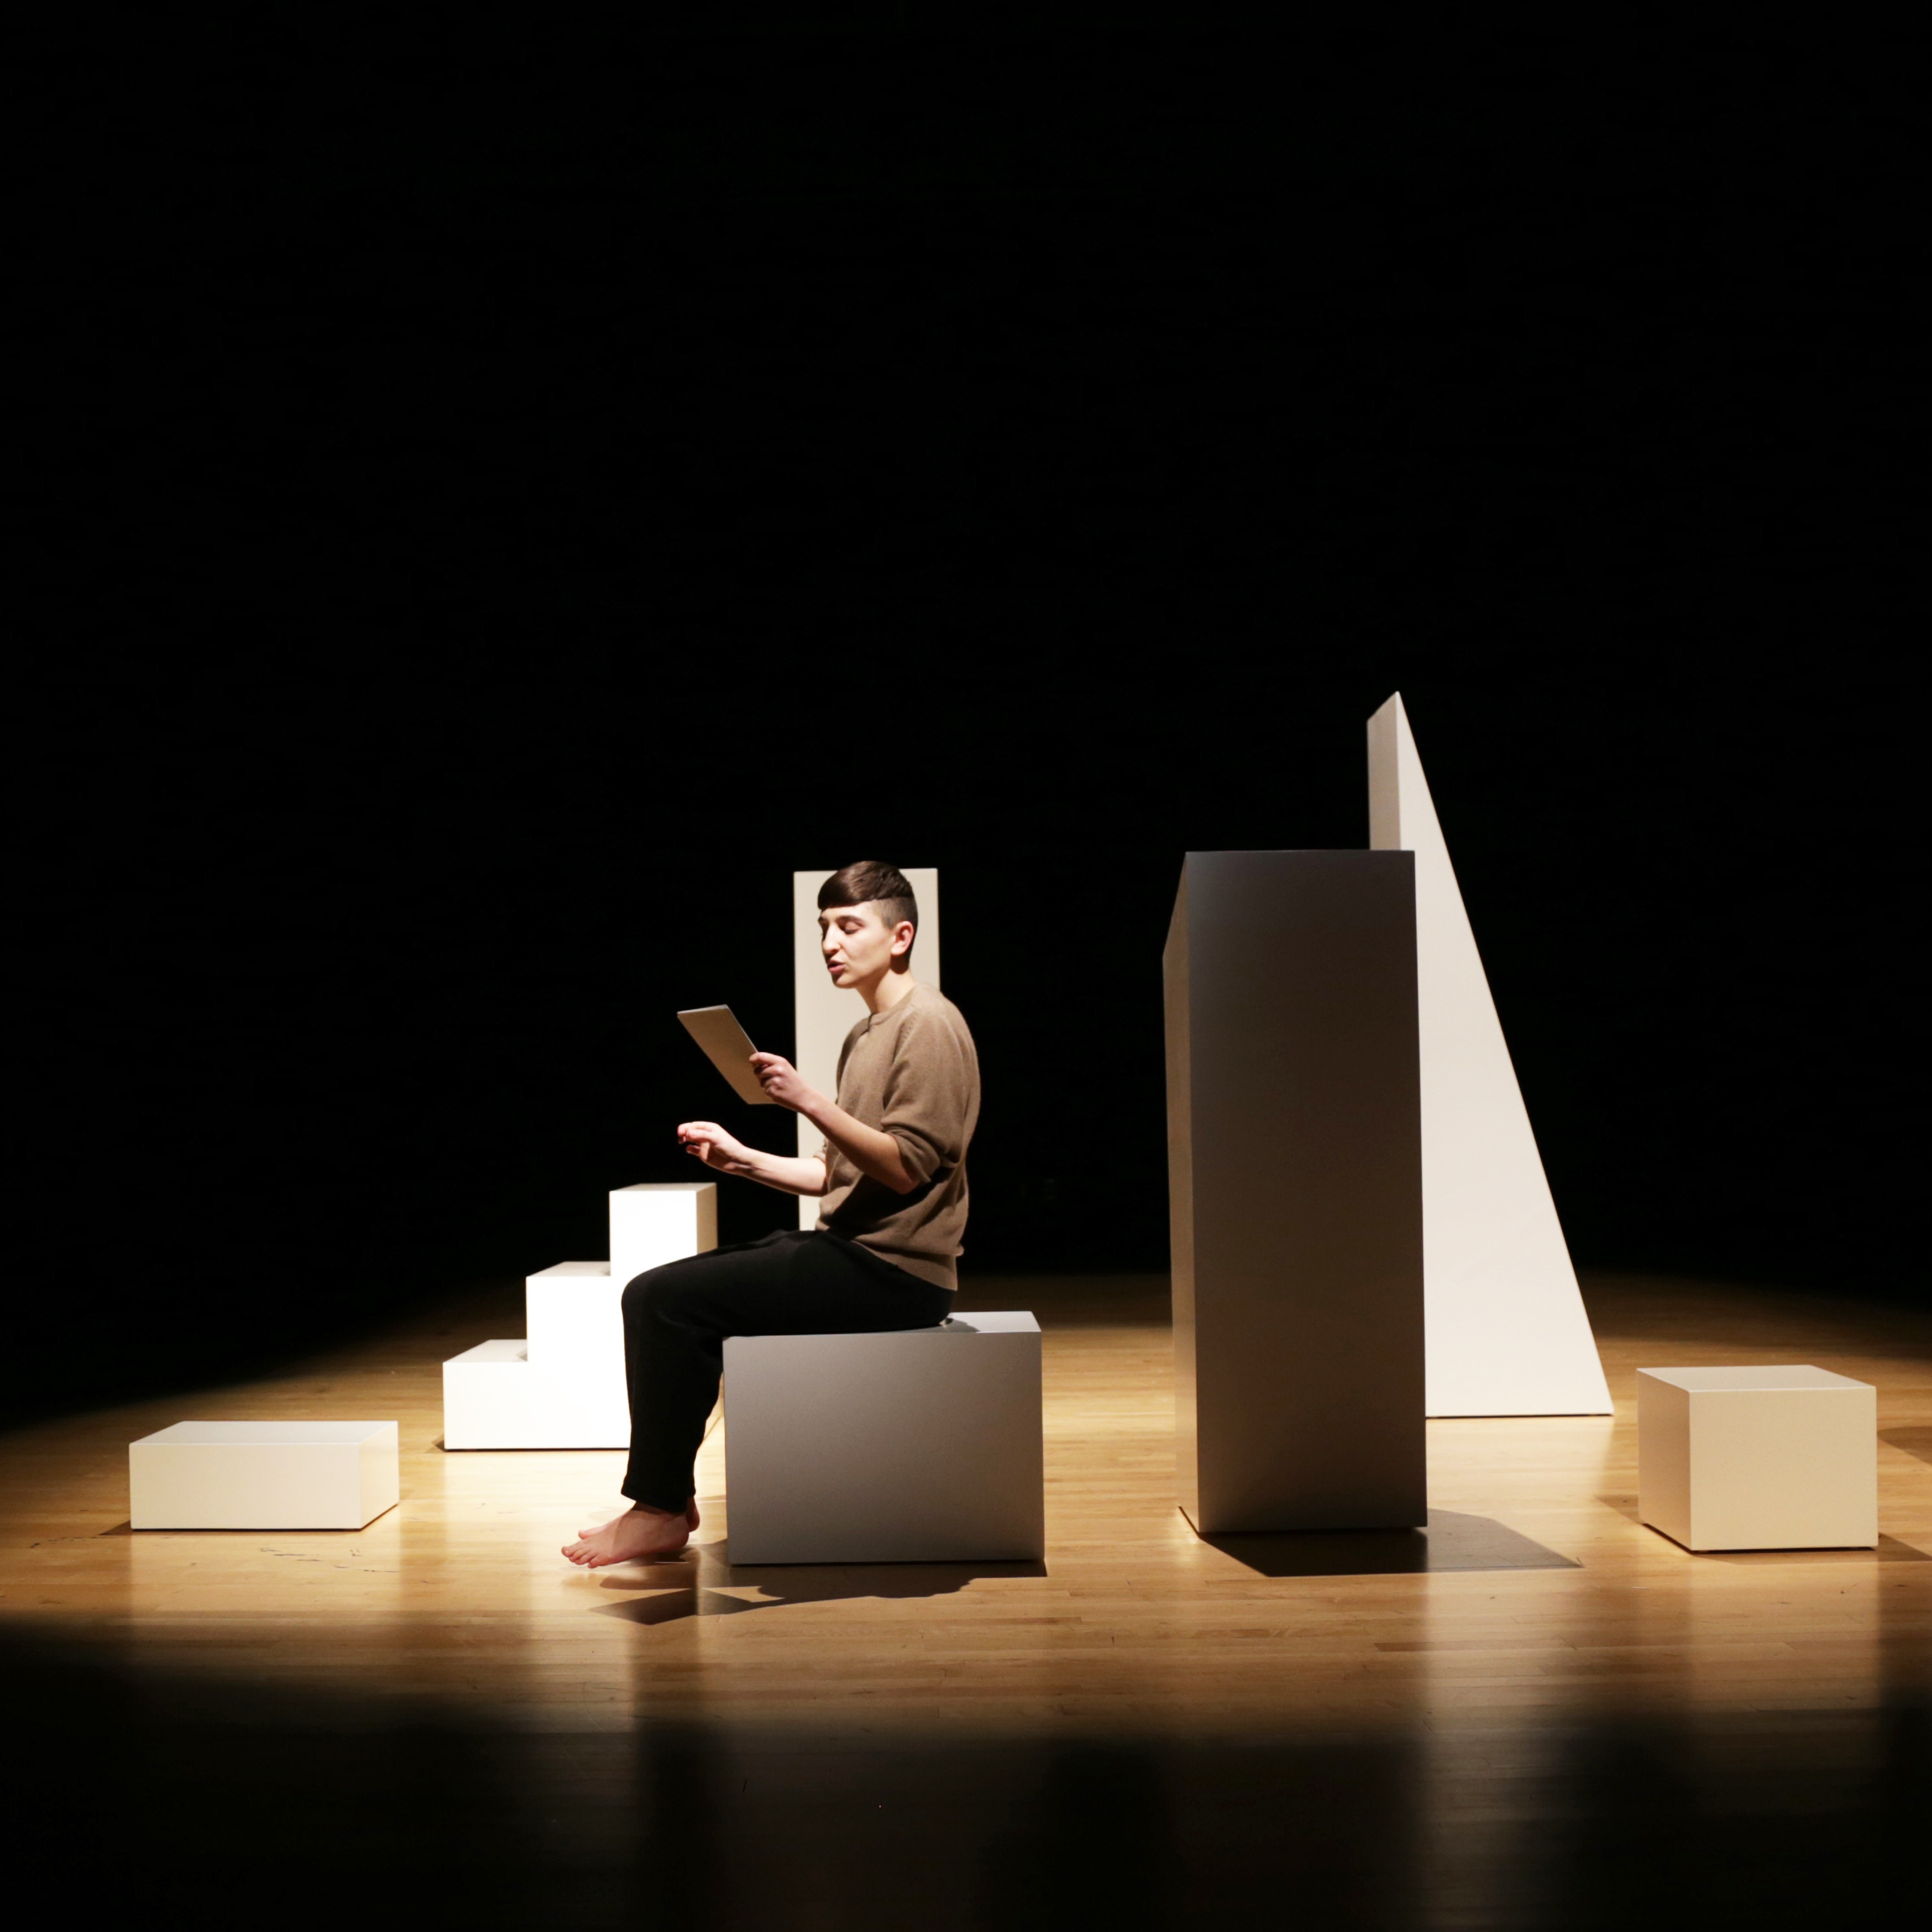 """<p>Gordon Hall (American, b. 1983). <i>""""Read me that part a-gain, where I disin-herit everybody,""""</i> 2014. Wood, paint, and performance-lecture with projected images and colored light, dimensions variable. Commissioned by EMPAC/Experimental Media and Performance Arts Center, Rensselaer Polytechnic Institute, Troy, New York. Courtesy of the artist. © Gordon Hall. Photo: Ryan Jenkins</p>"""